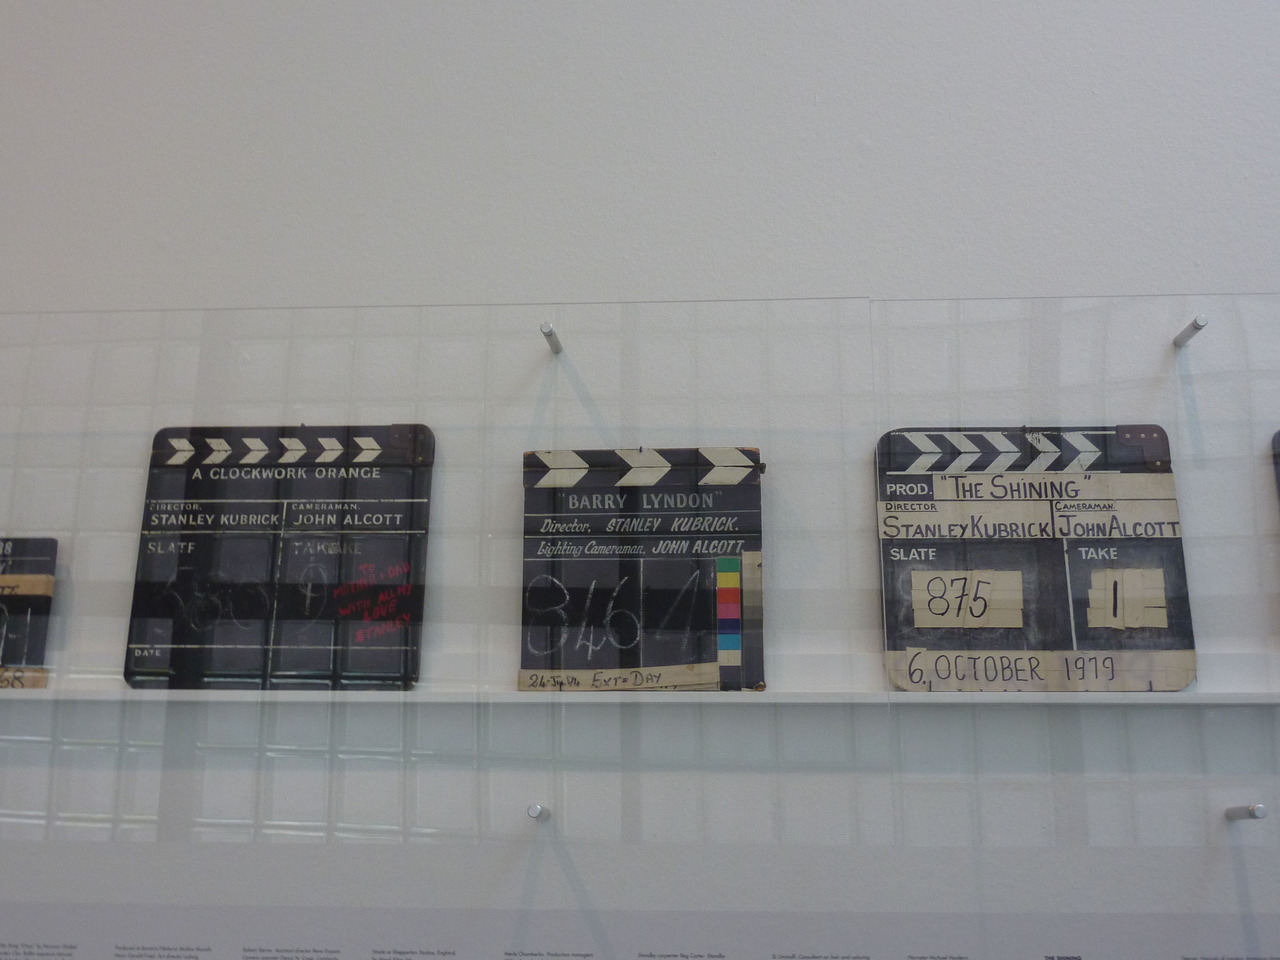 Clapper Boards from Stanley Kubrick's films.